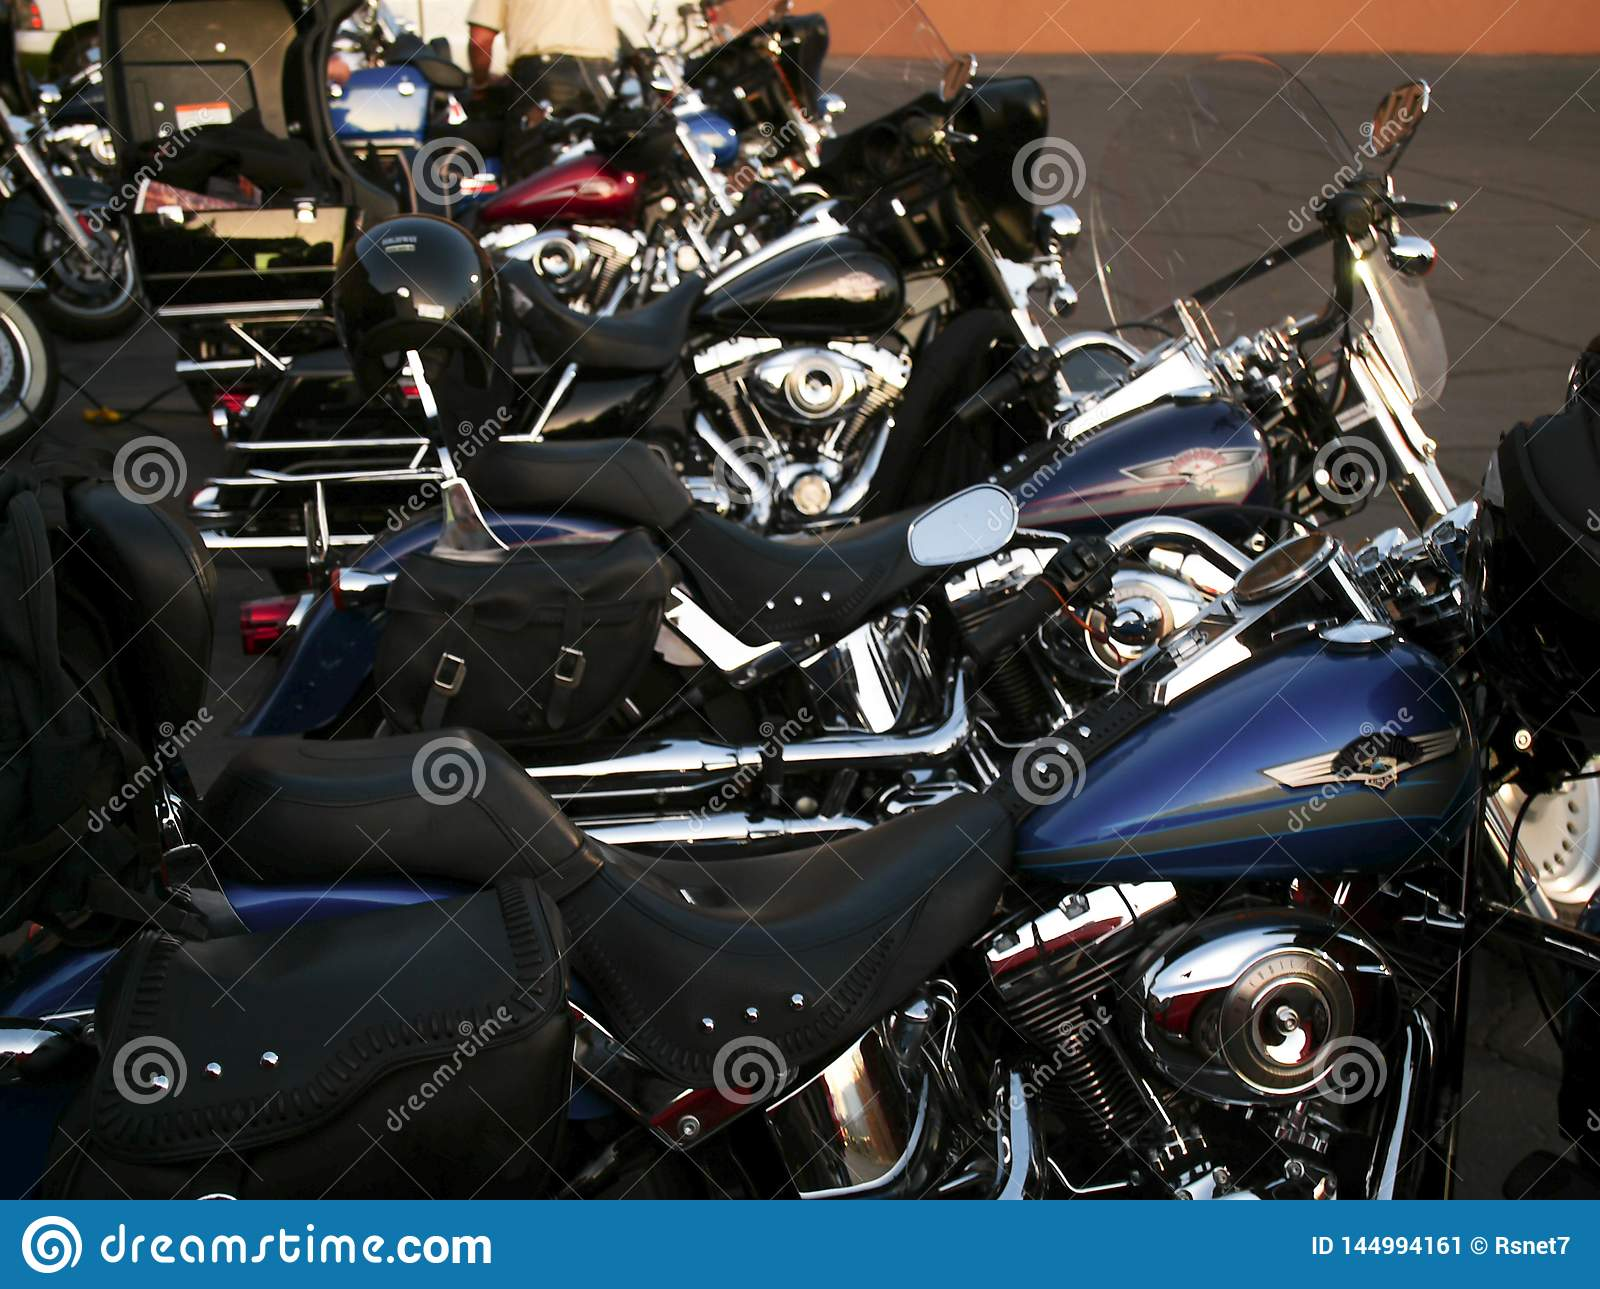 Heavy motorcycles are lined up